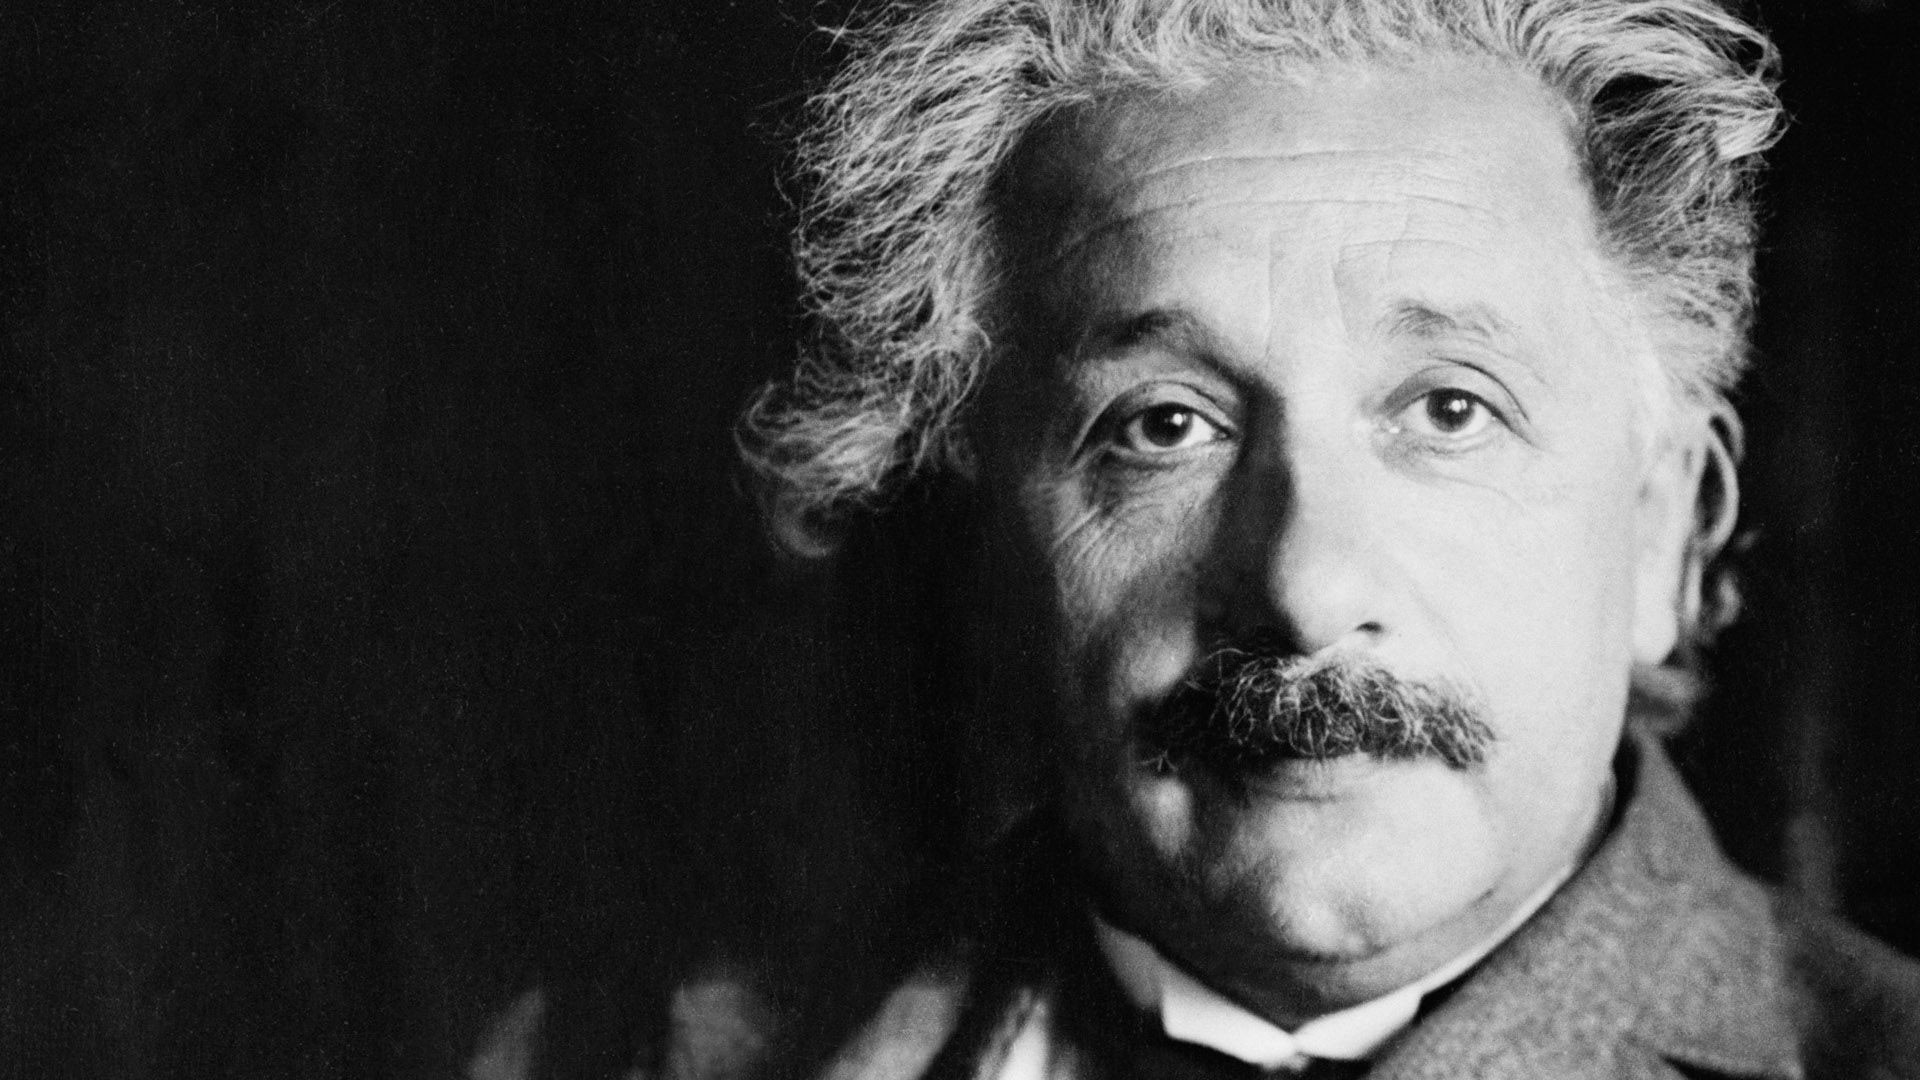 essay on albert einstein in marathi Download and read albert einstein essay in marathi albert einstein essay in marathi many people are trying to be smarter every day how's about you.